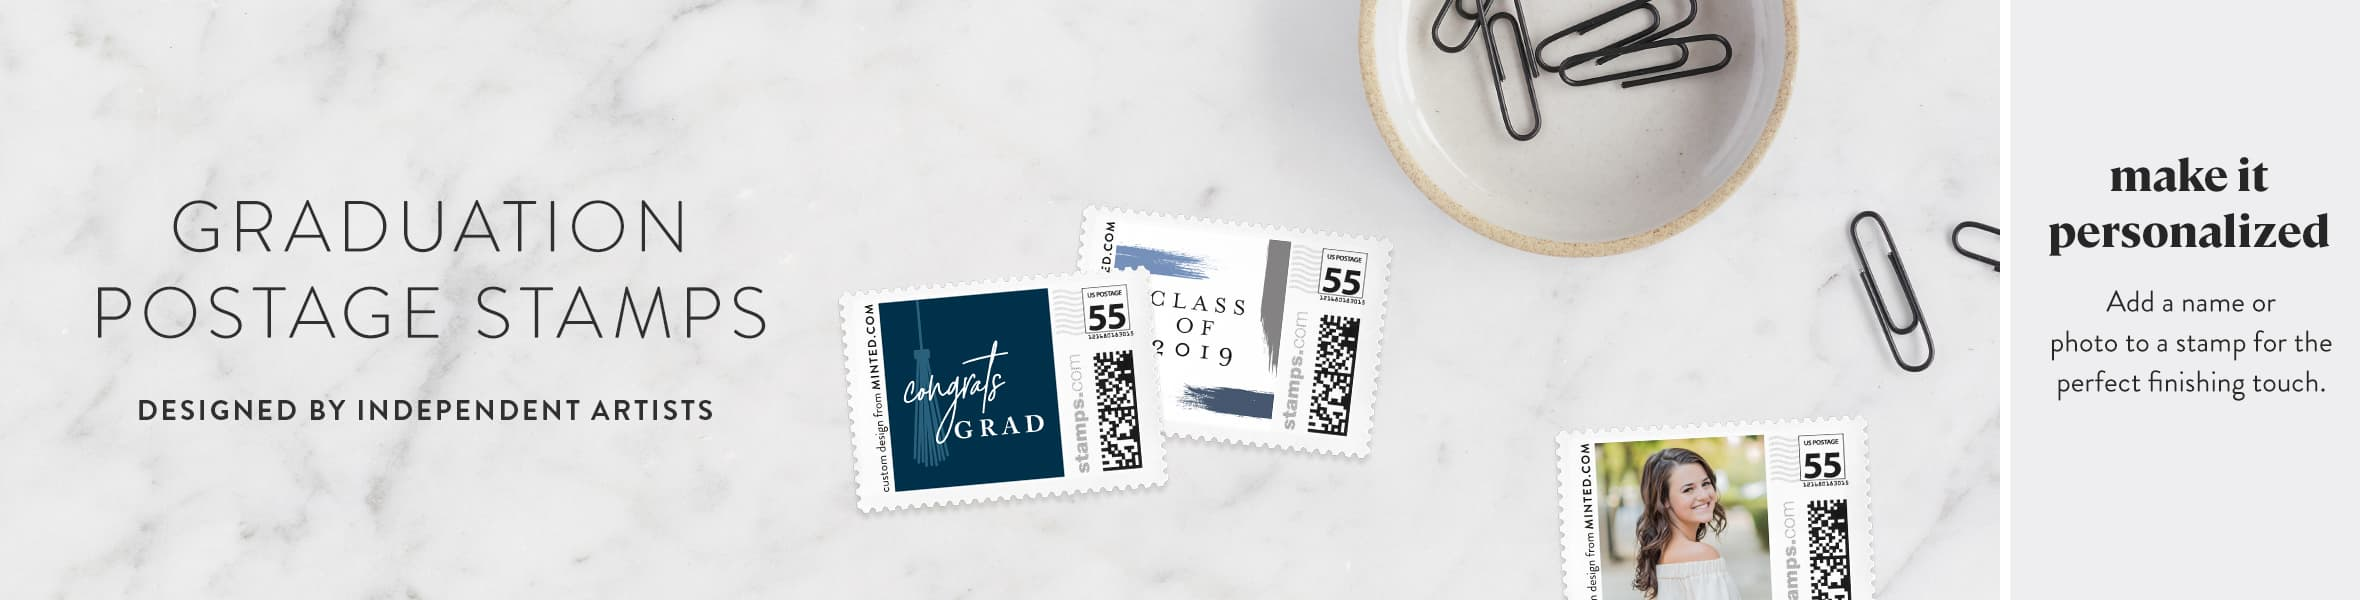 Graduation Postage Stamps